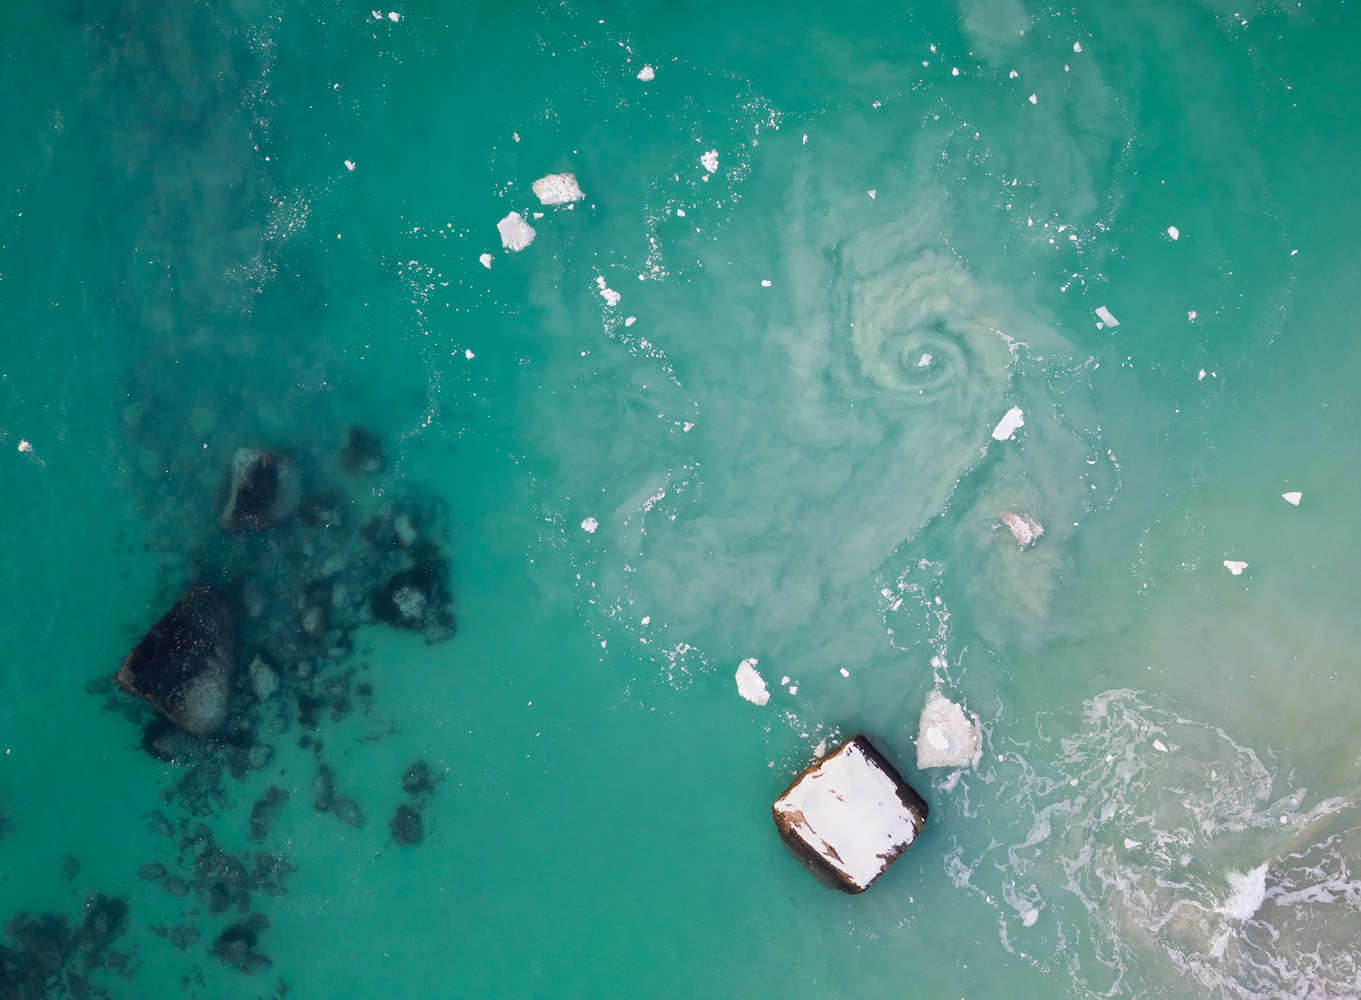 This amazing whirlpool was hiding about 10-20 meters from where I was standing. There was no way I could've detected or shot it without the drone.